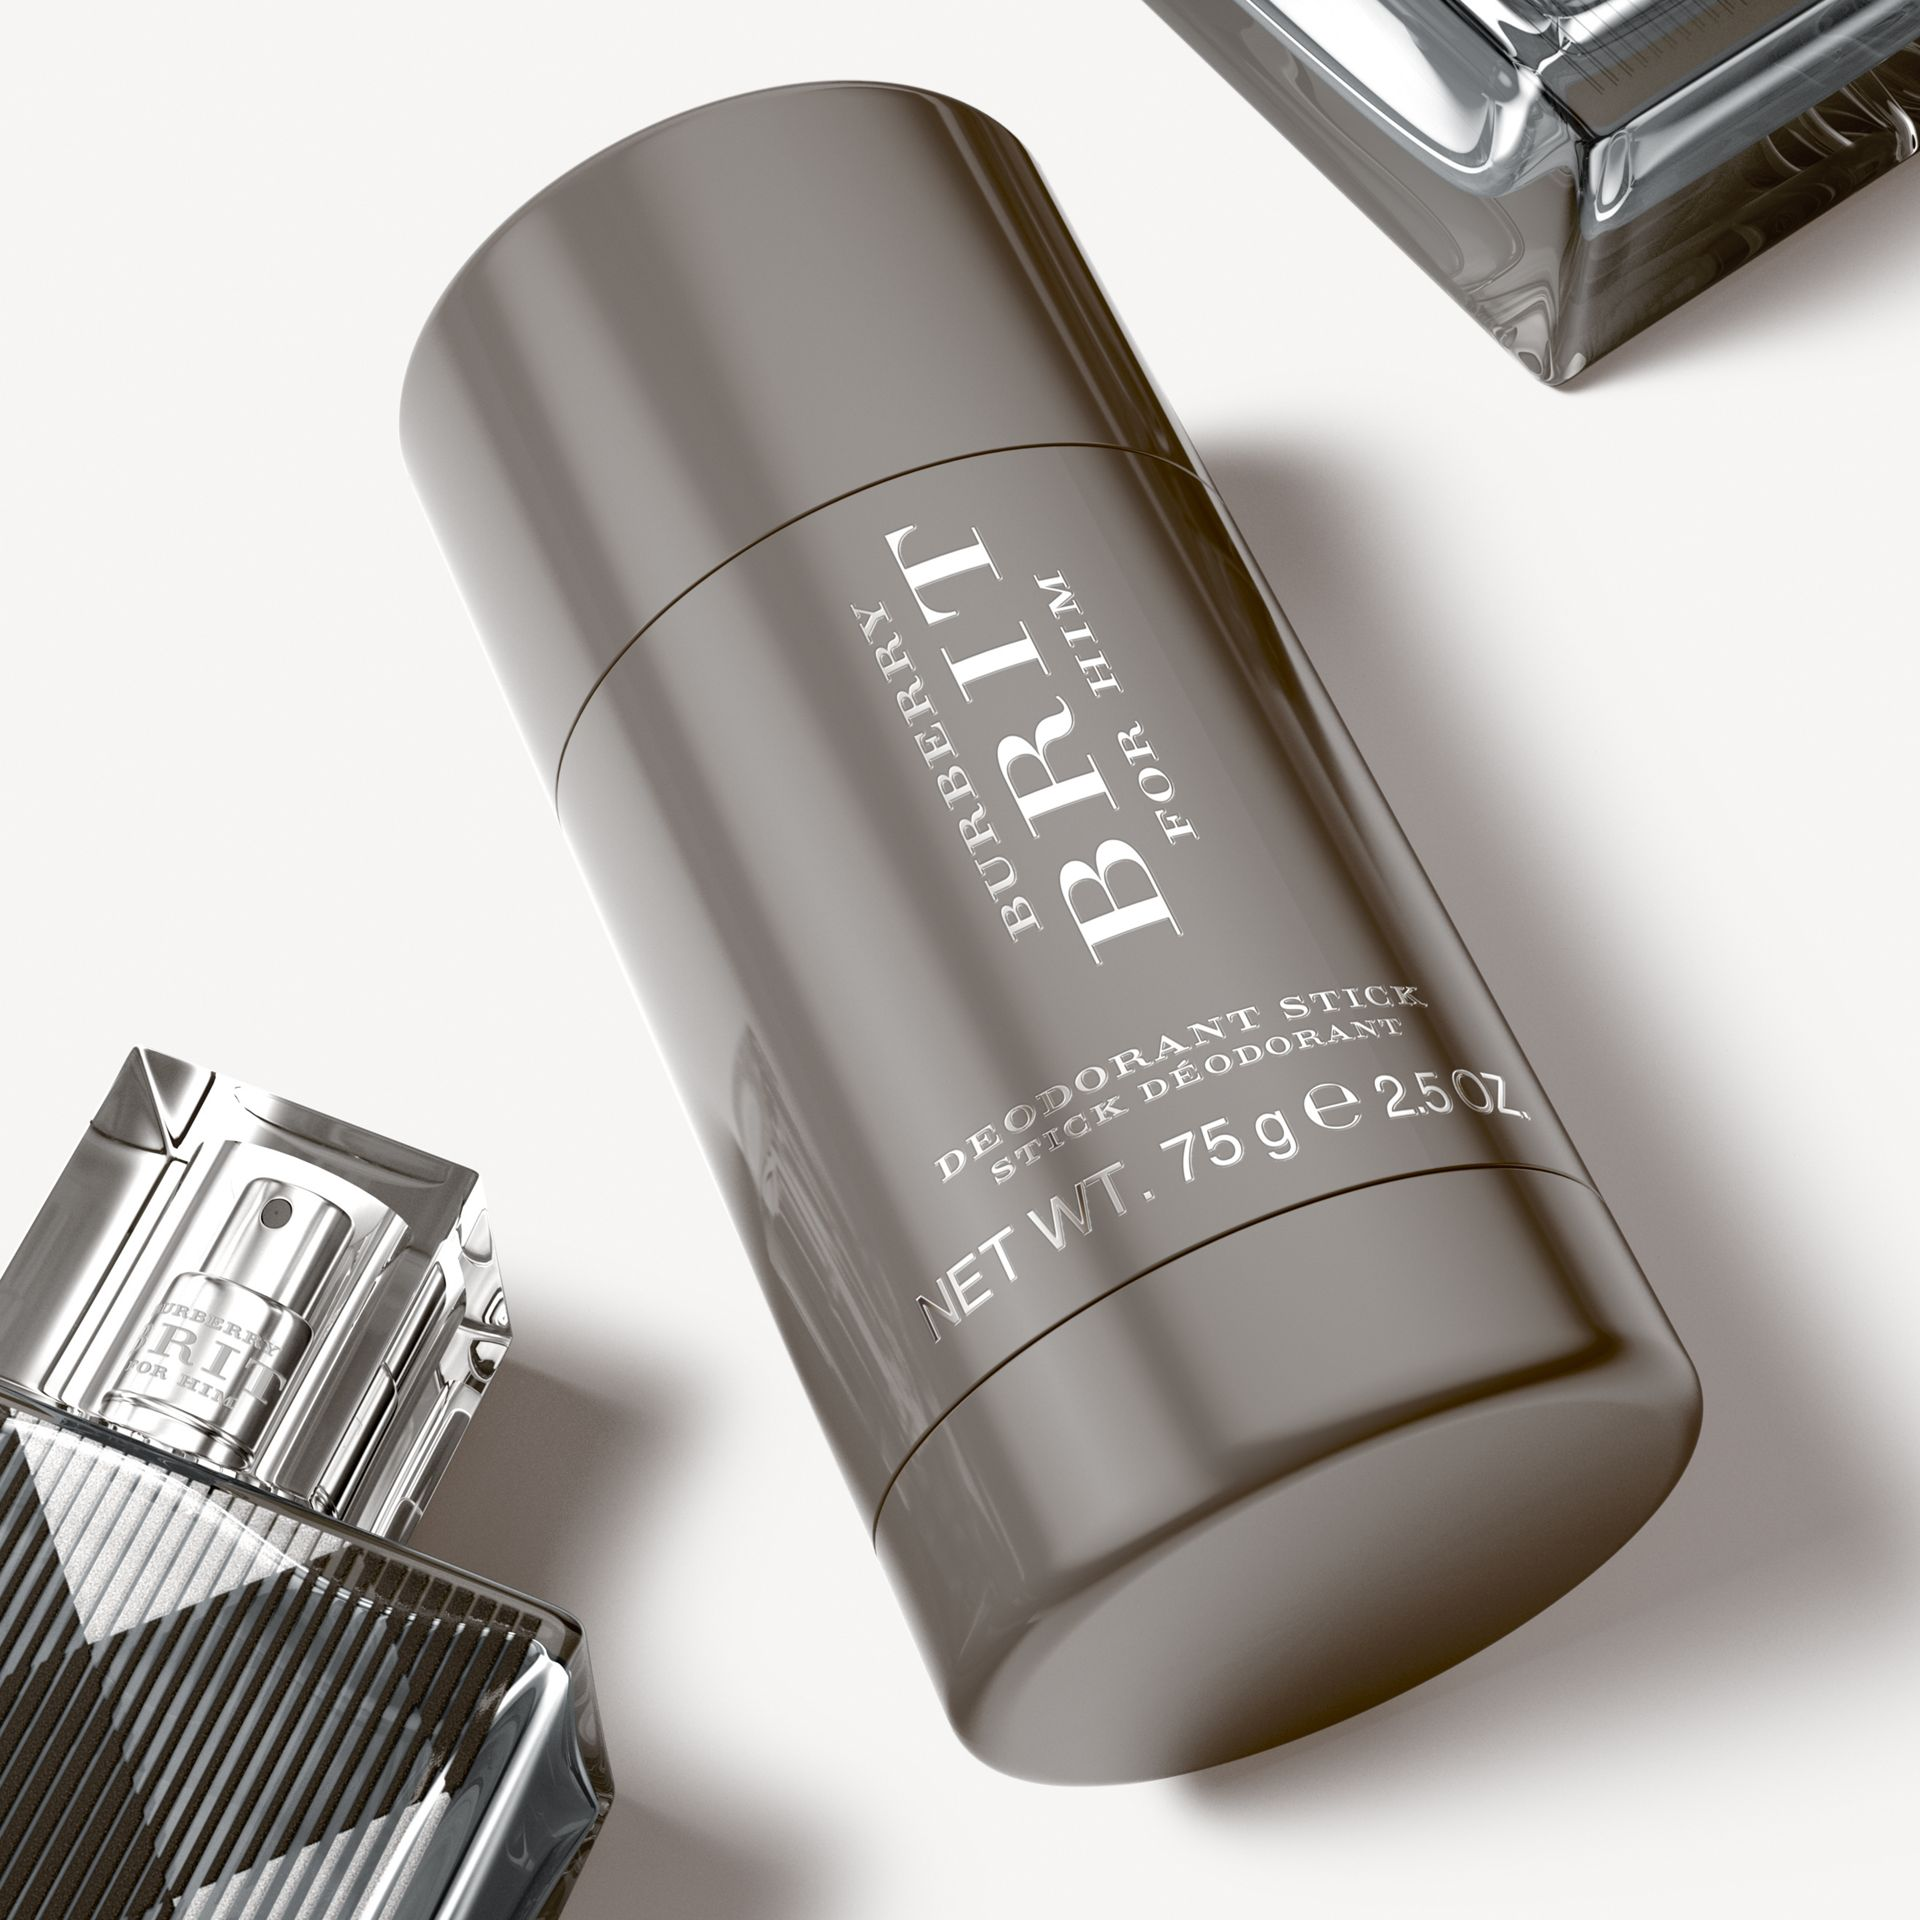 Burberry Brit For Him Deodorant Stick 75g - gallery image 2